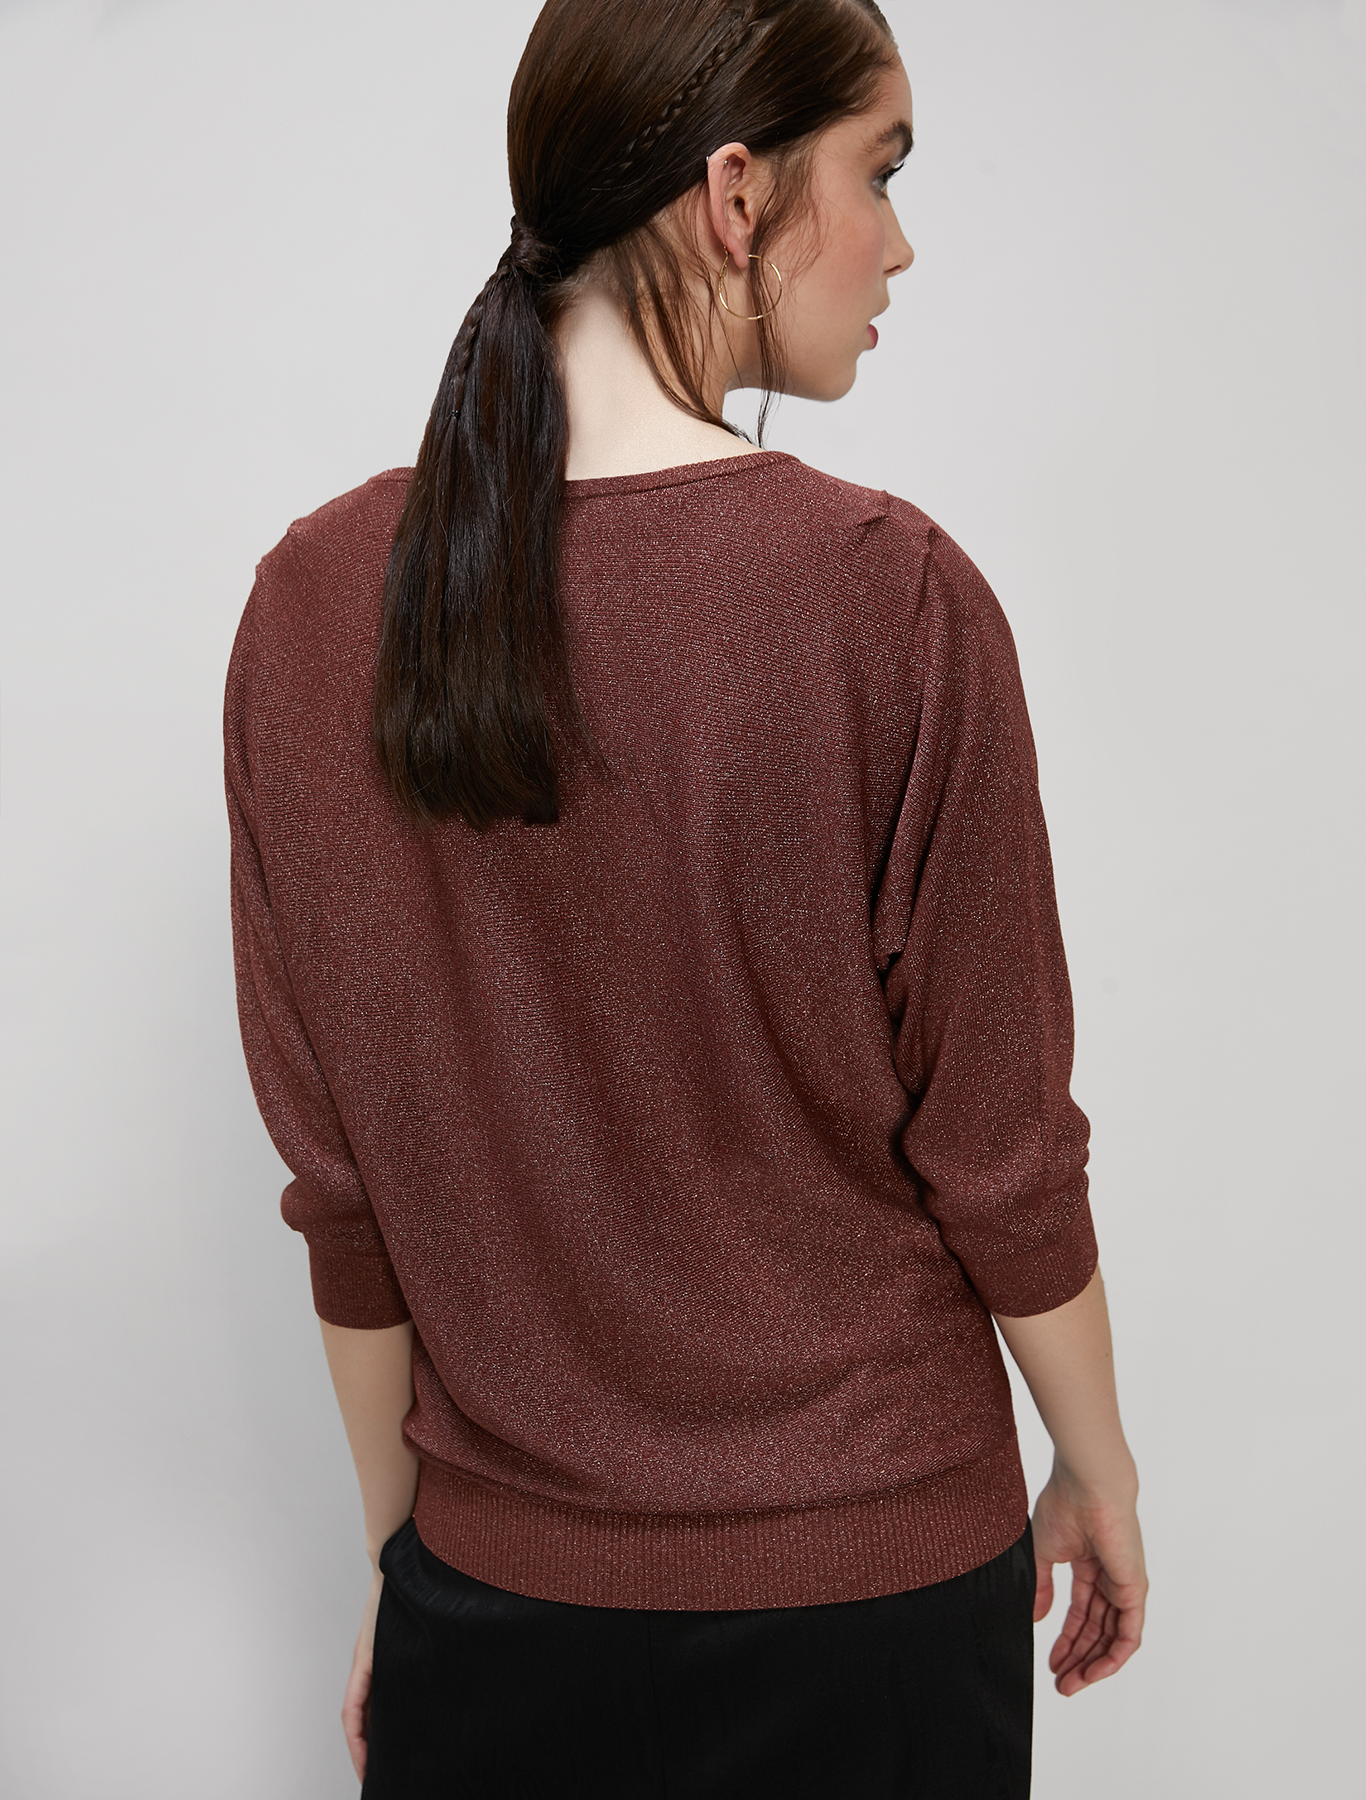 Lamé jumper with draped detailing - cocoa - pennyblack